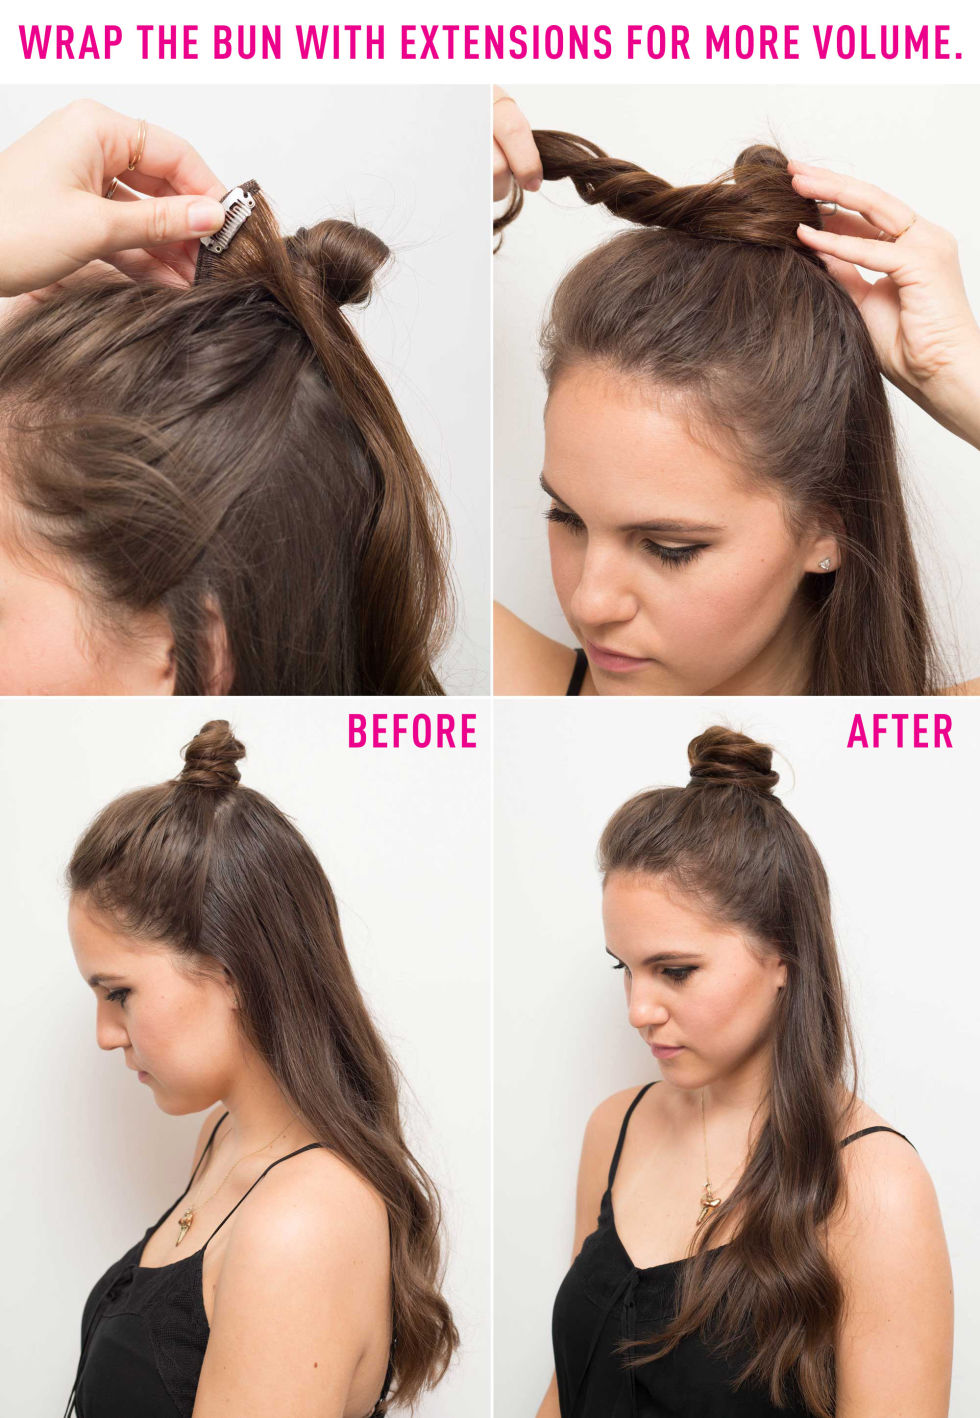 HD wallpapers professional hairstyles buns